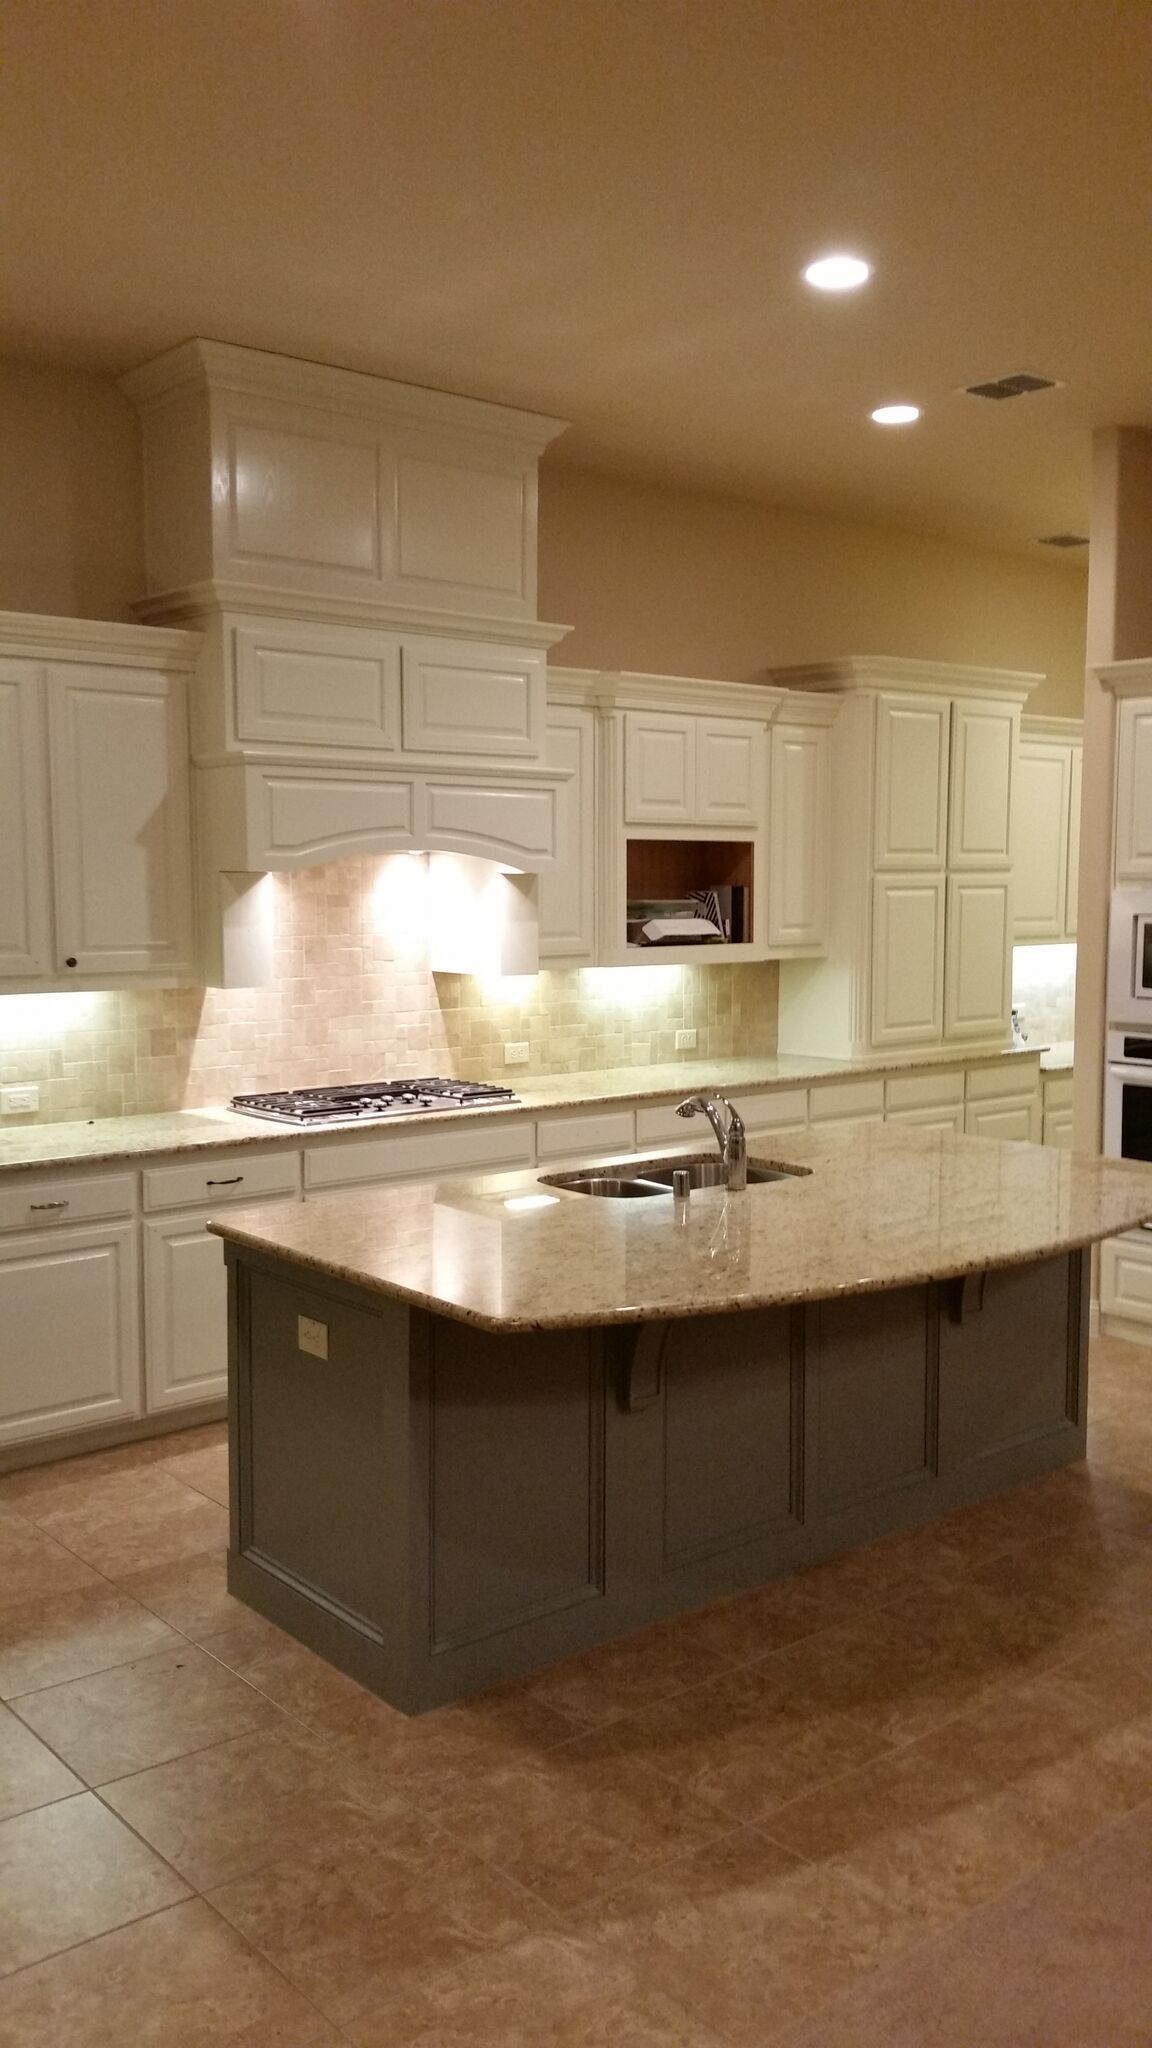 Cabinet refinishing gives the perfect look to your ...